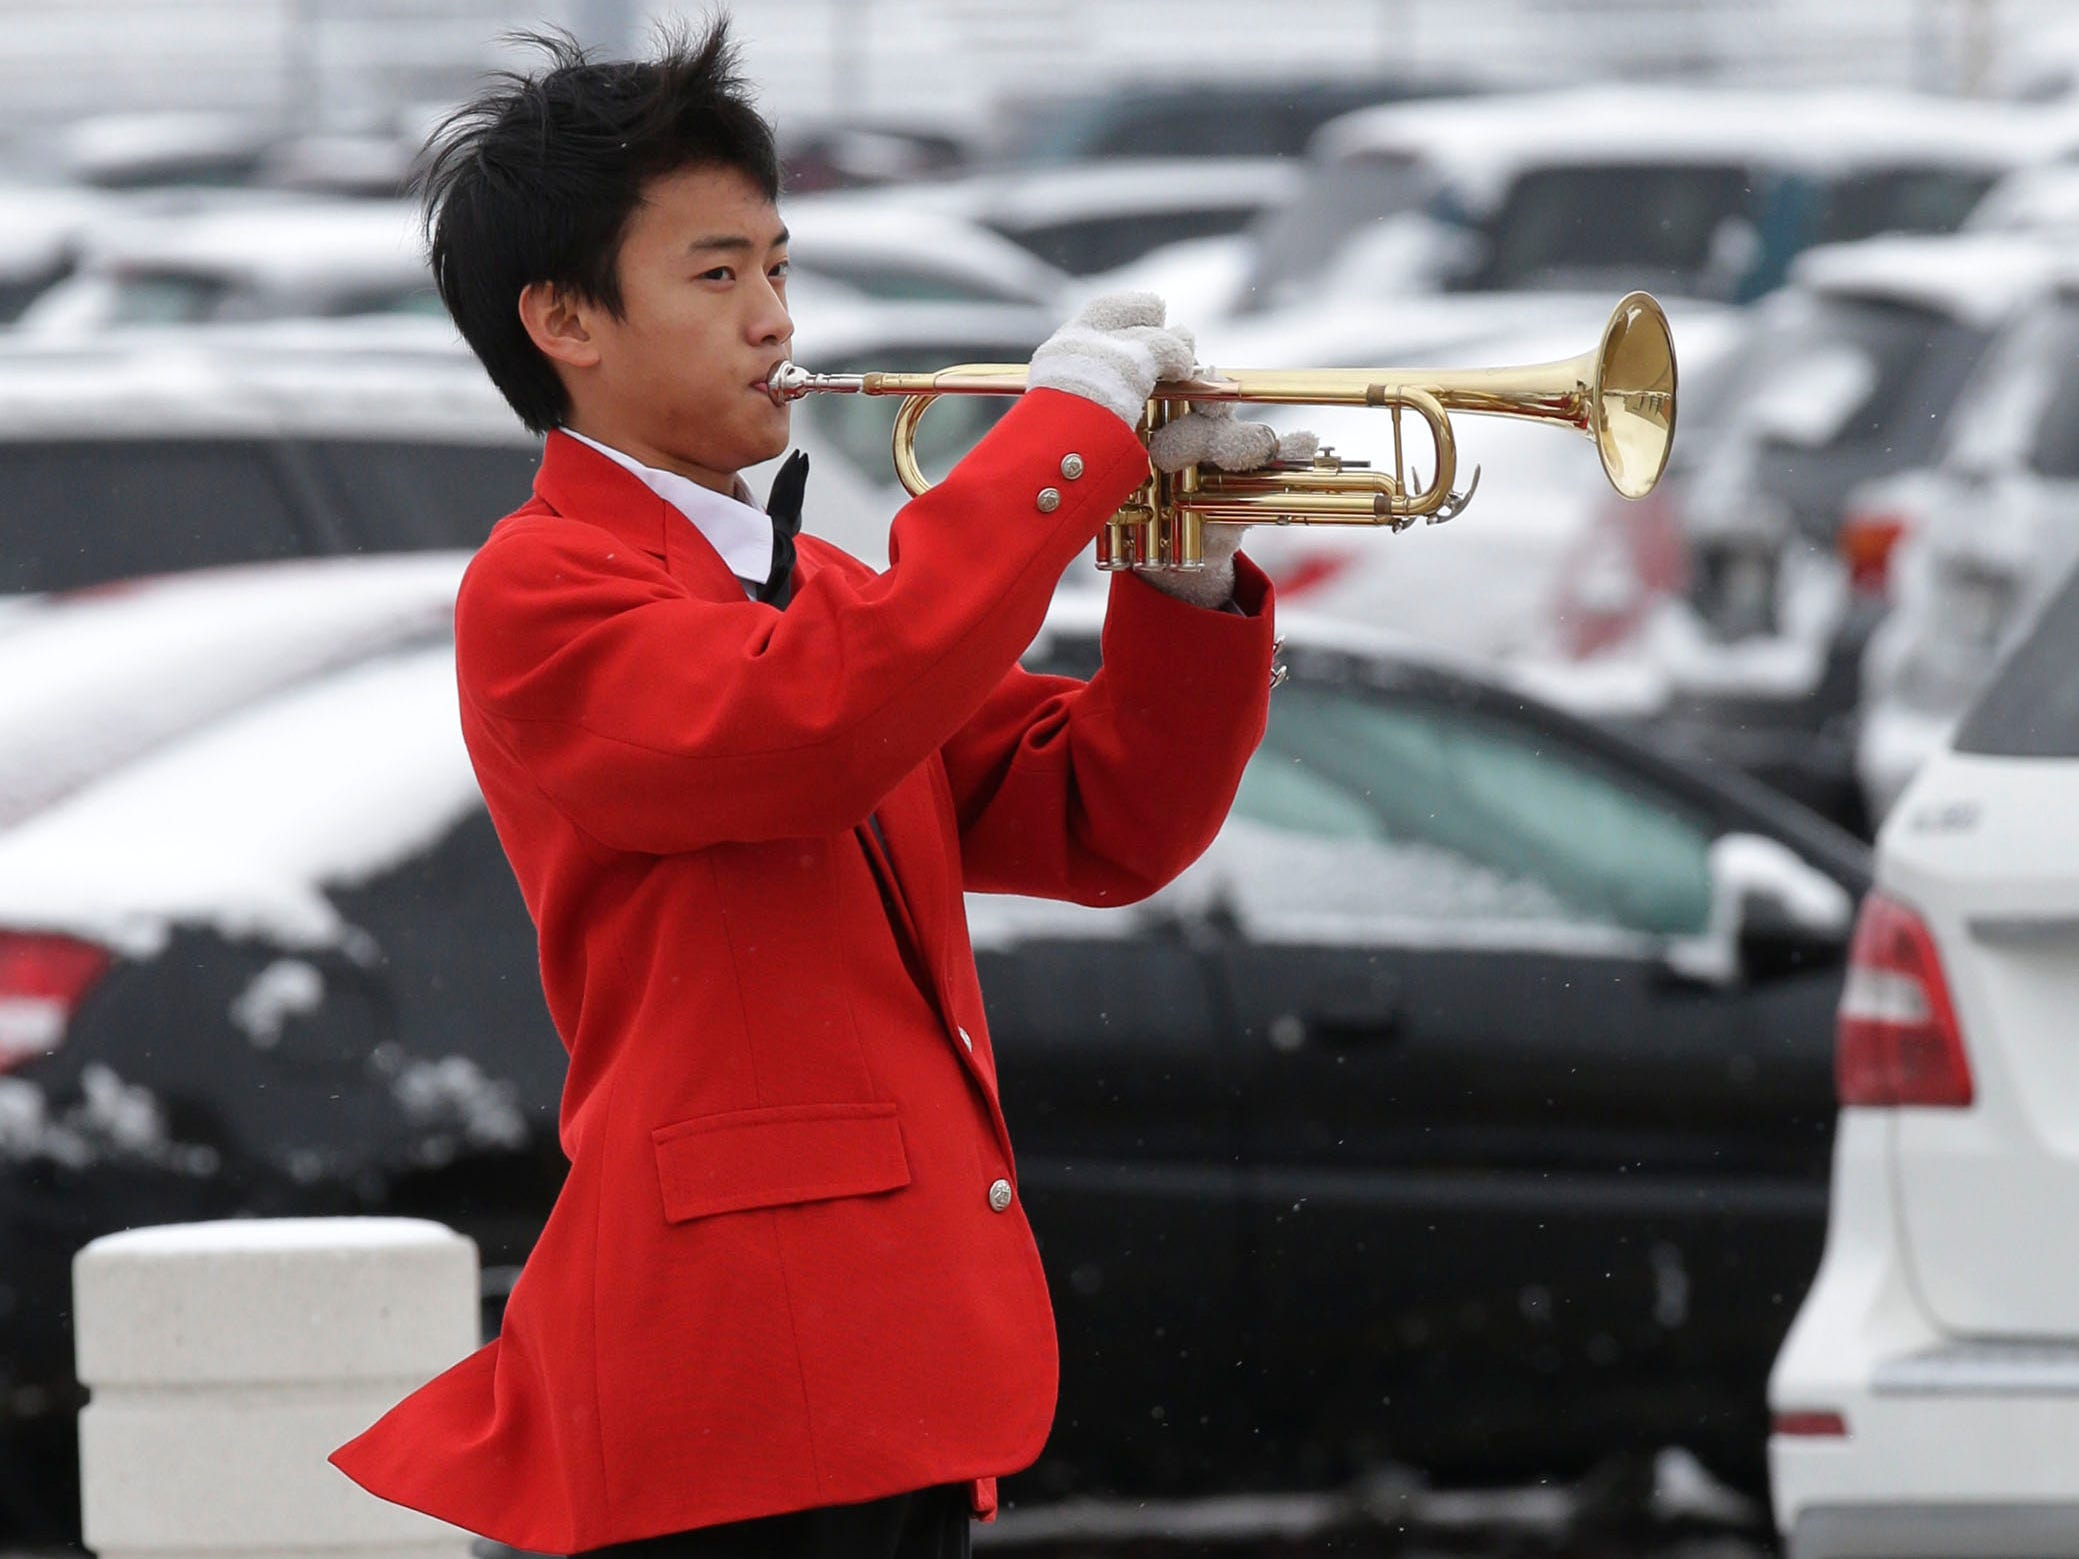 Kong Meng Yang performs Taps at the end of the Sheboygan South Veterans Day program, Friday, November 9, 2018, in Sheboygan, Wis.